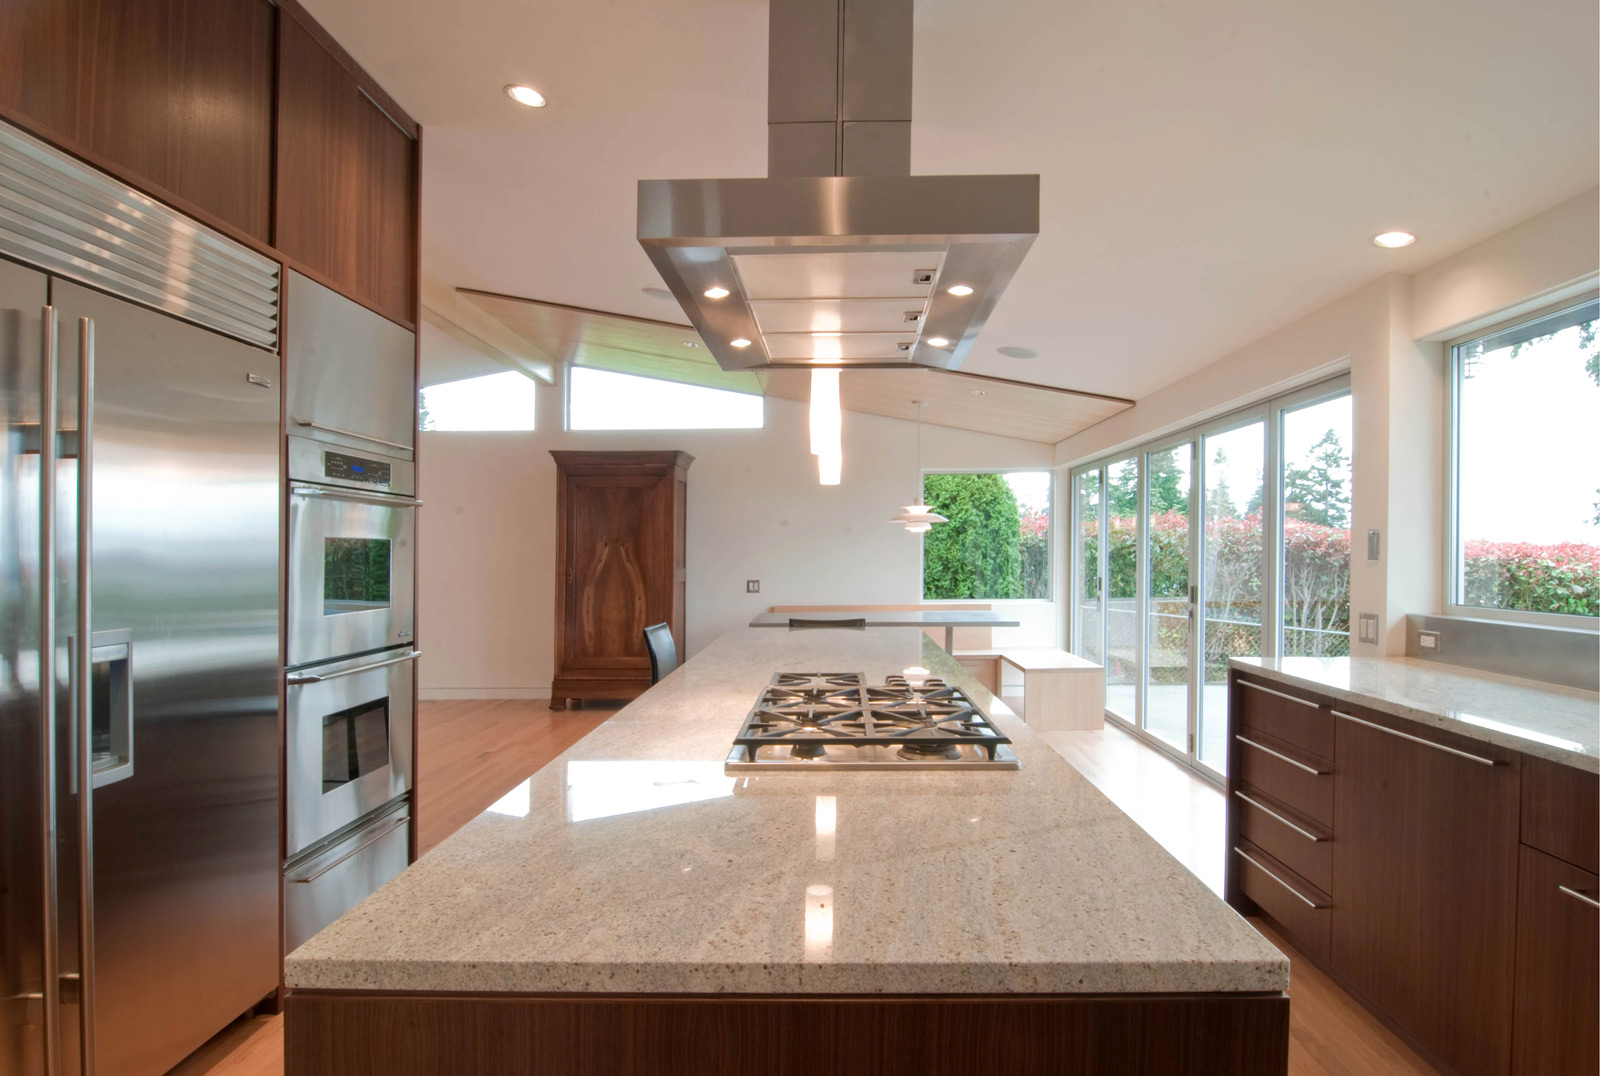 design strategies for kitchen hood venting install kitchen island Design Strategies for Kitchen Hood Venting